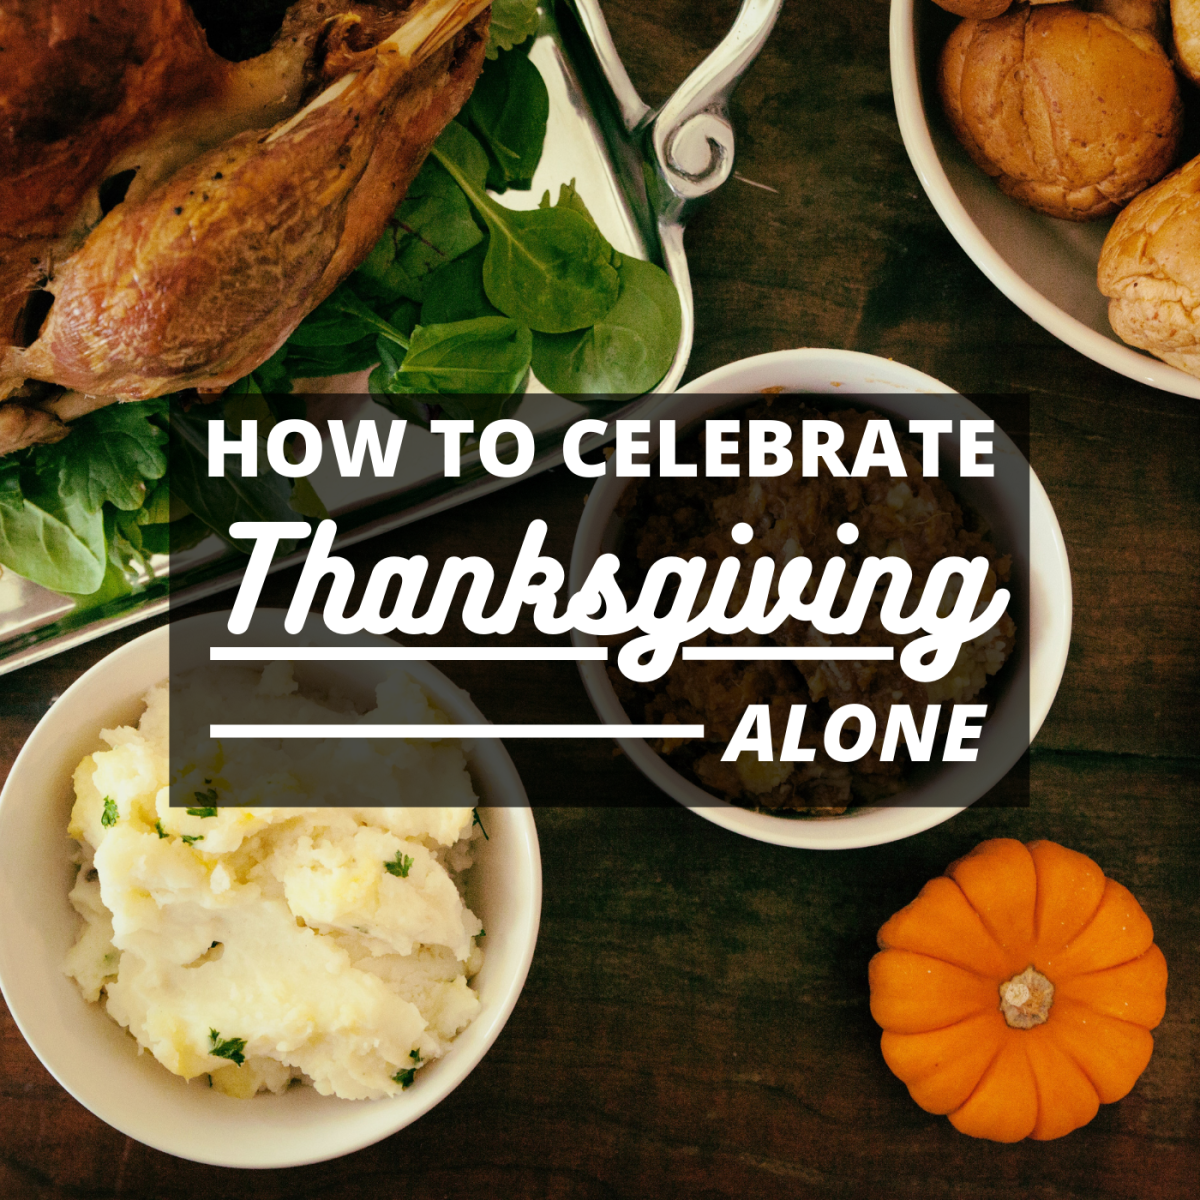 How to Make Thanksgiving Festive When Celebrating Alone